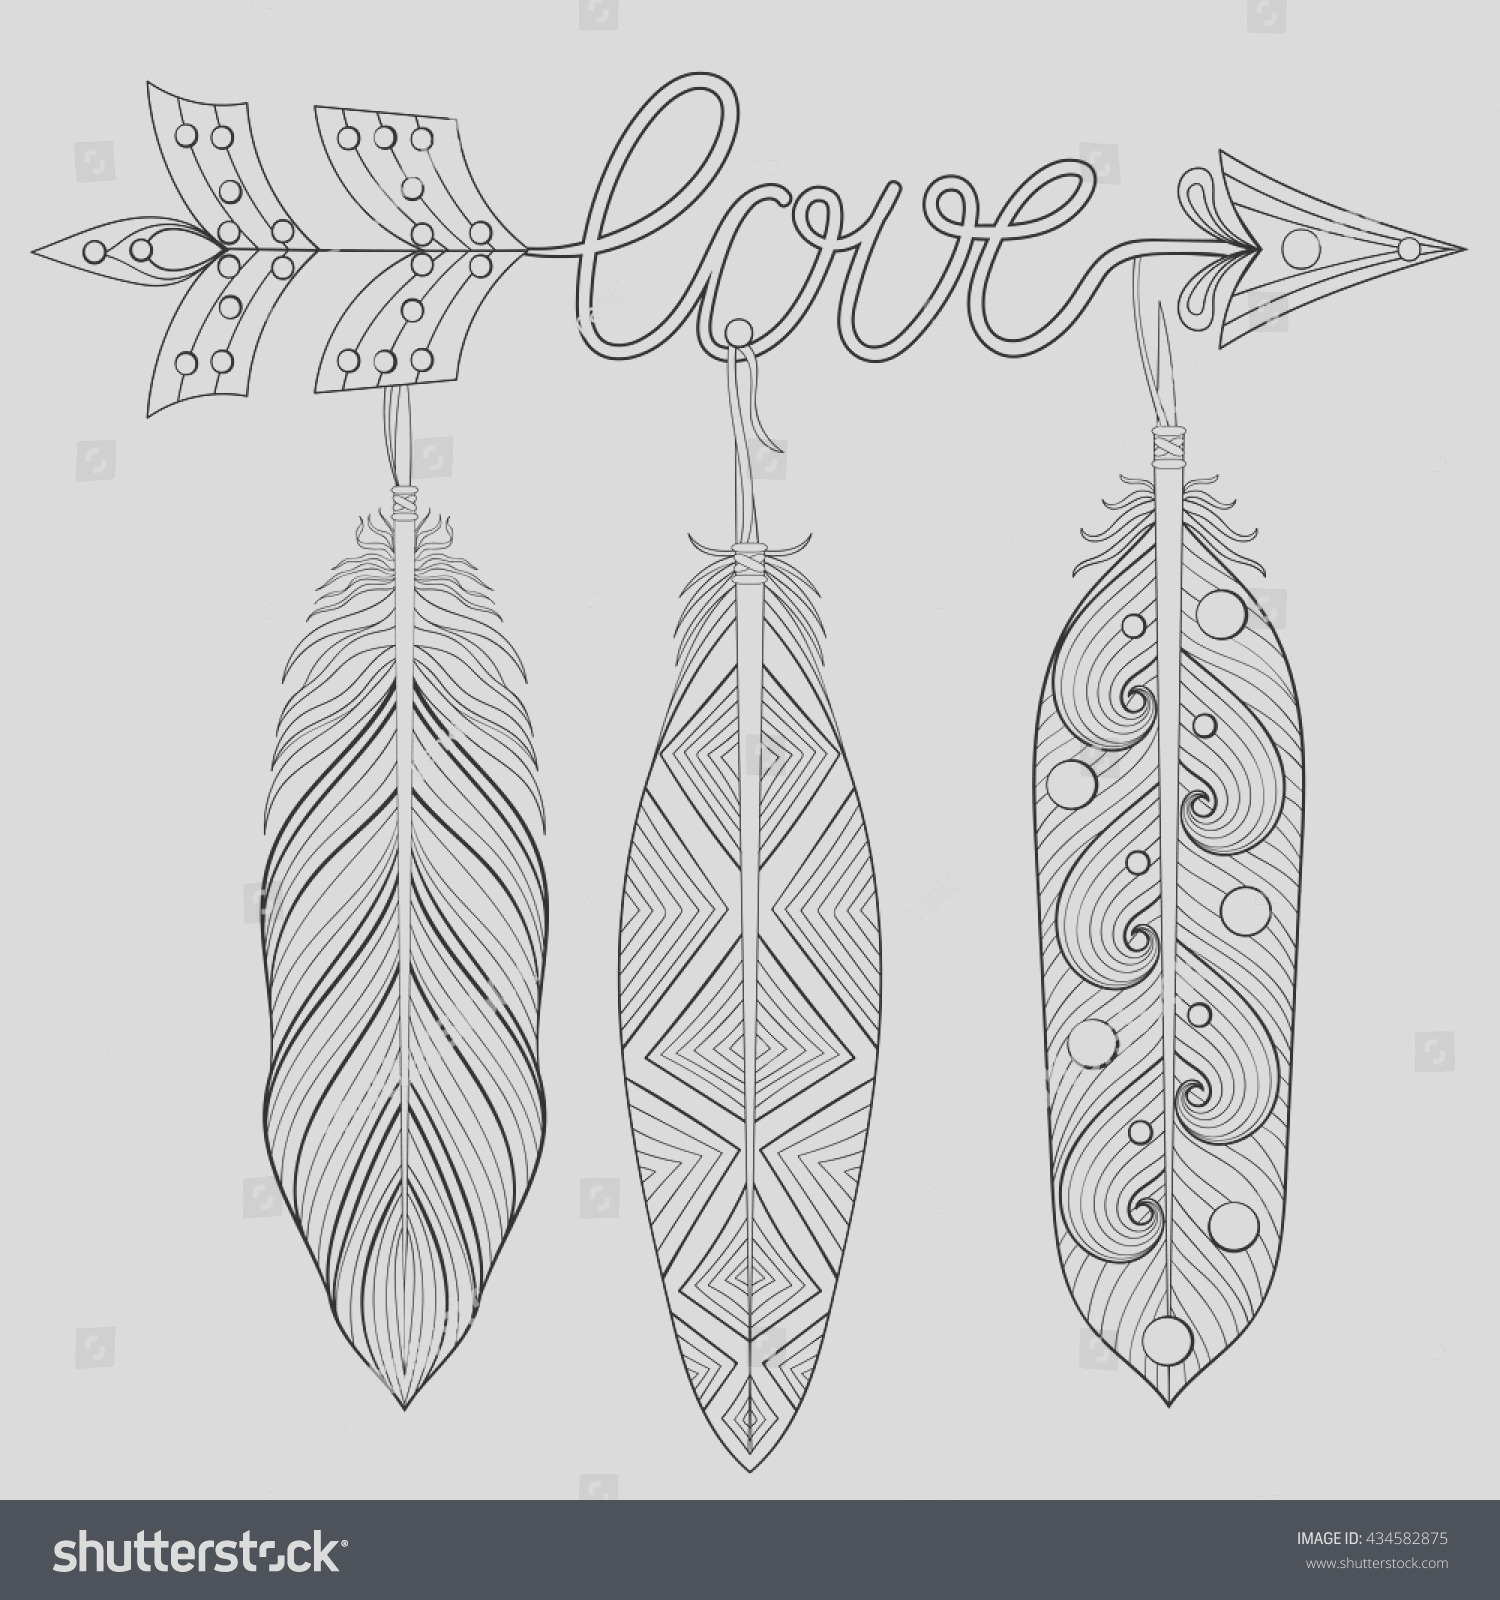 stock vector bohemian arrow hand drawn amulet wih word love and feathers esoteric decor for adult coloring